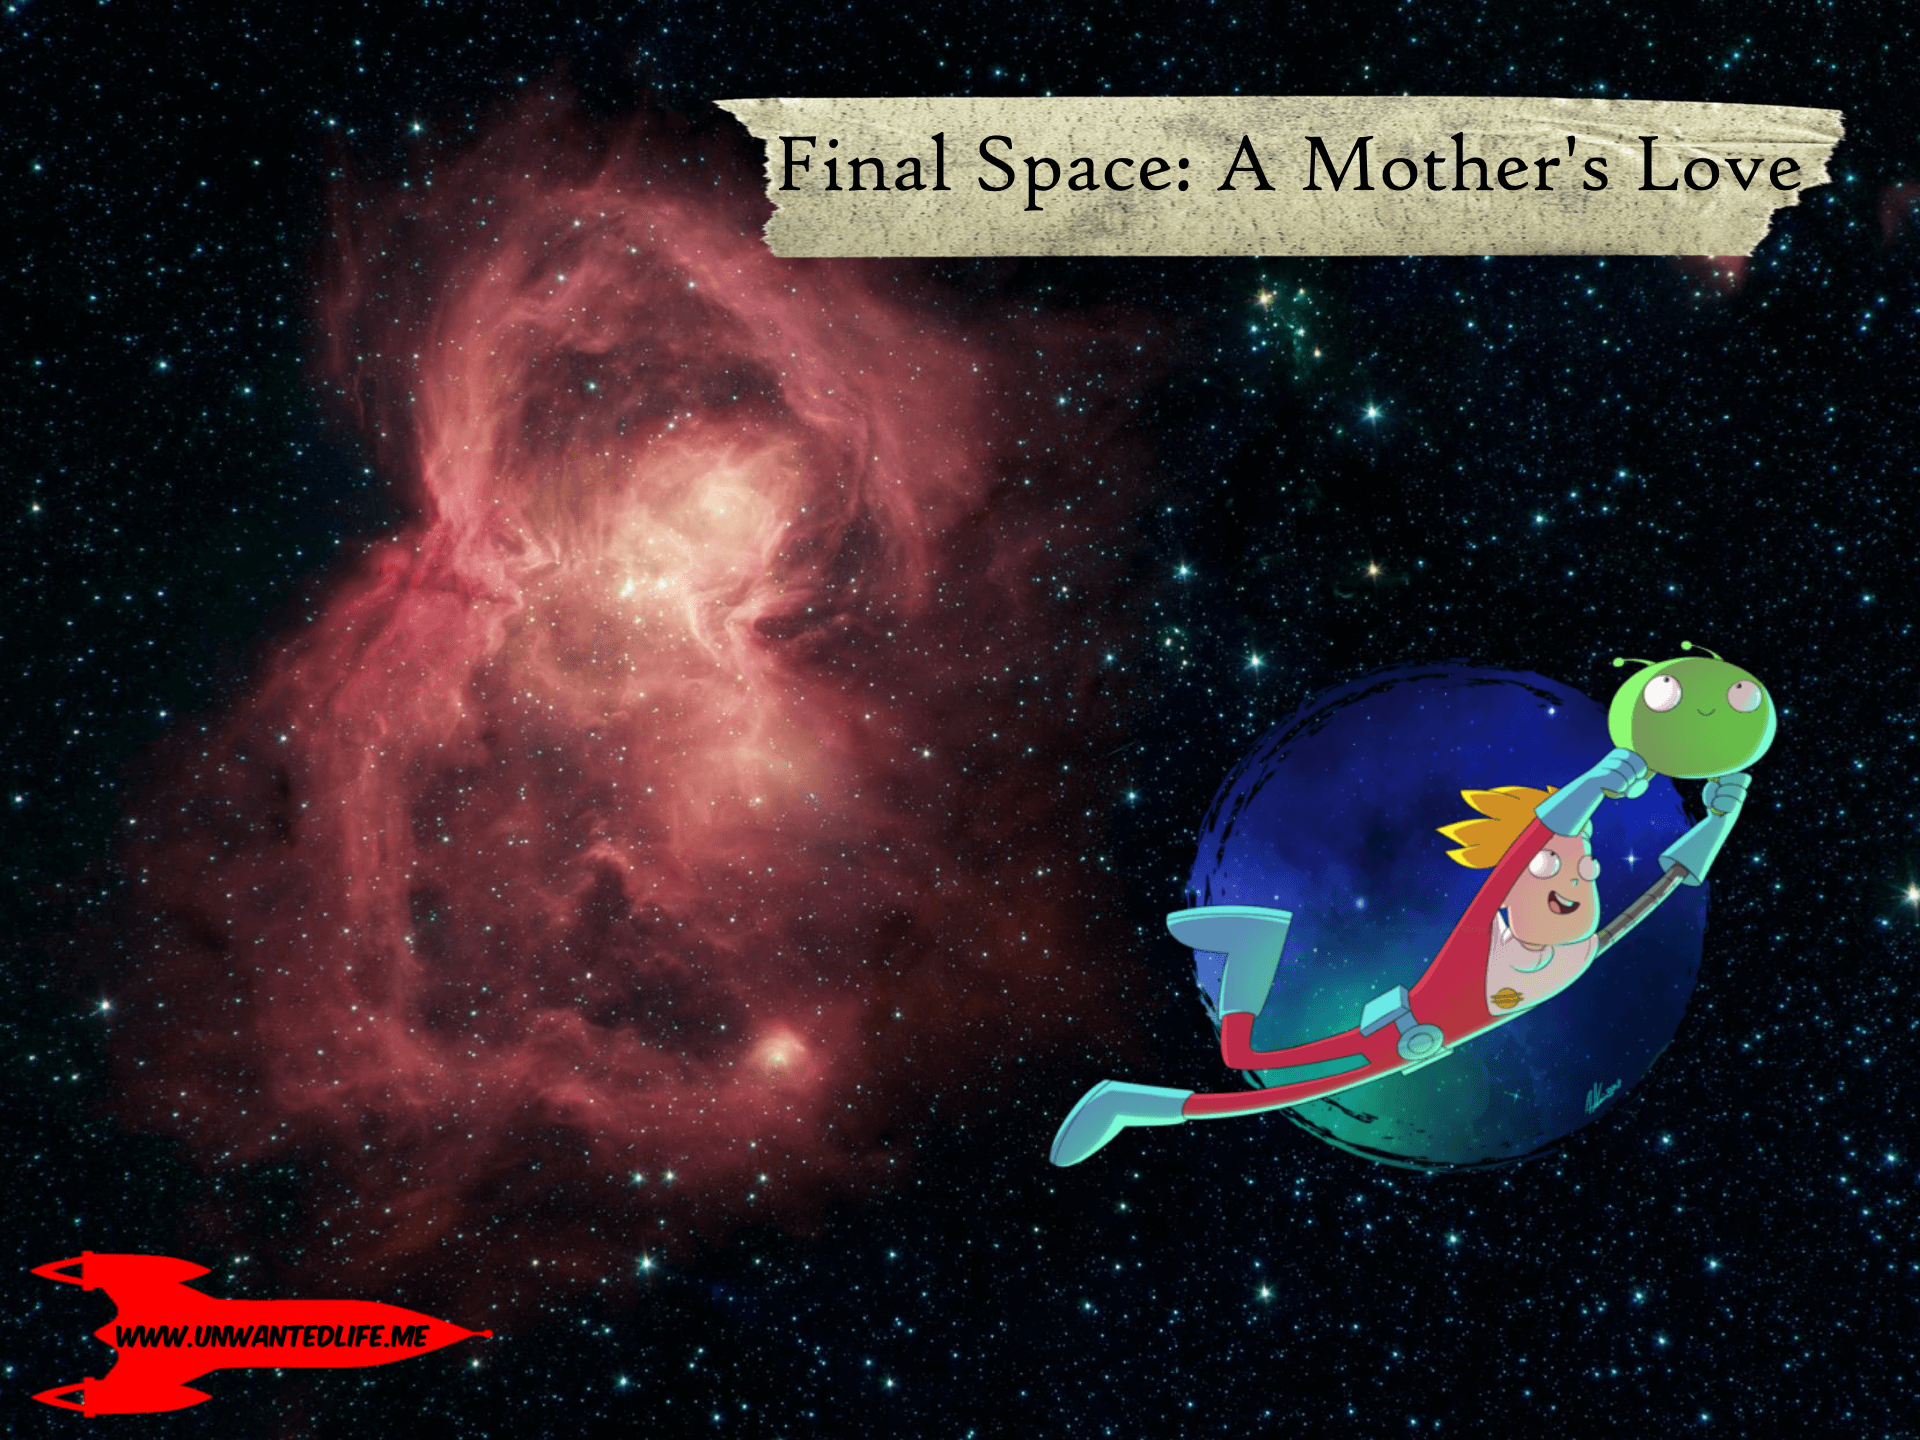 Final Space: A Mother's Love | Mother's Day | Unwanted Life